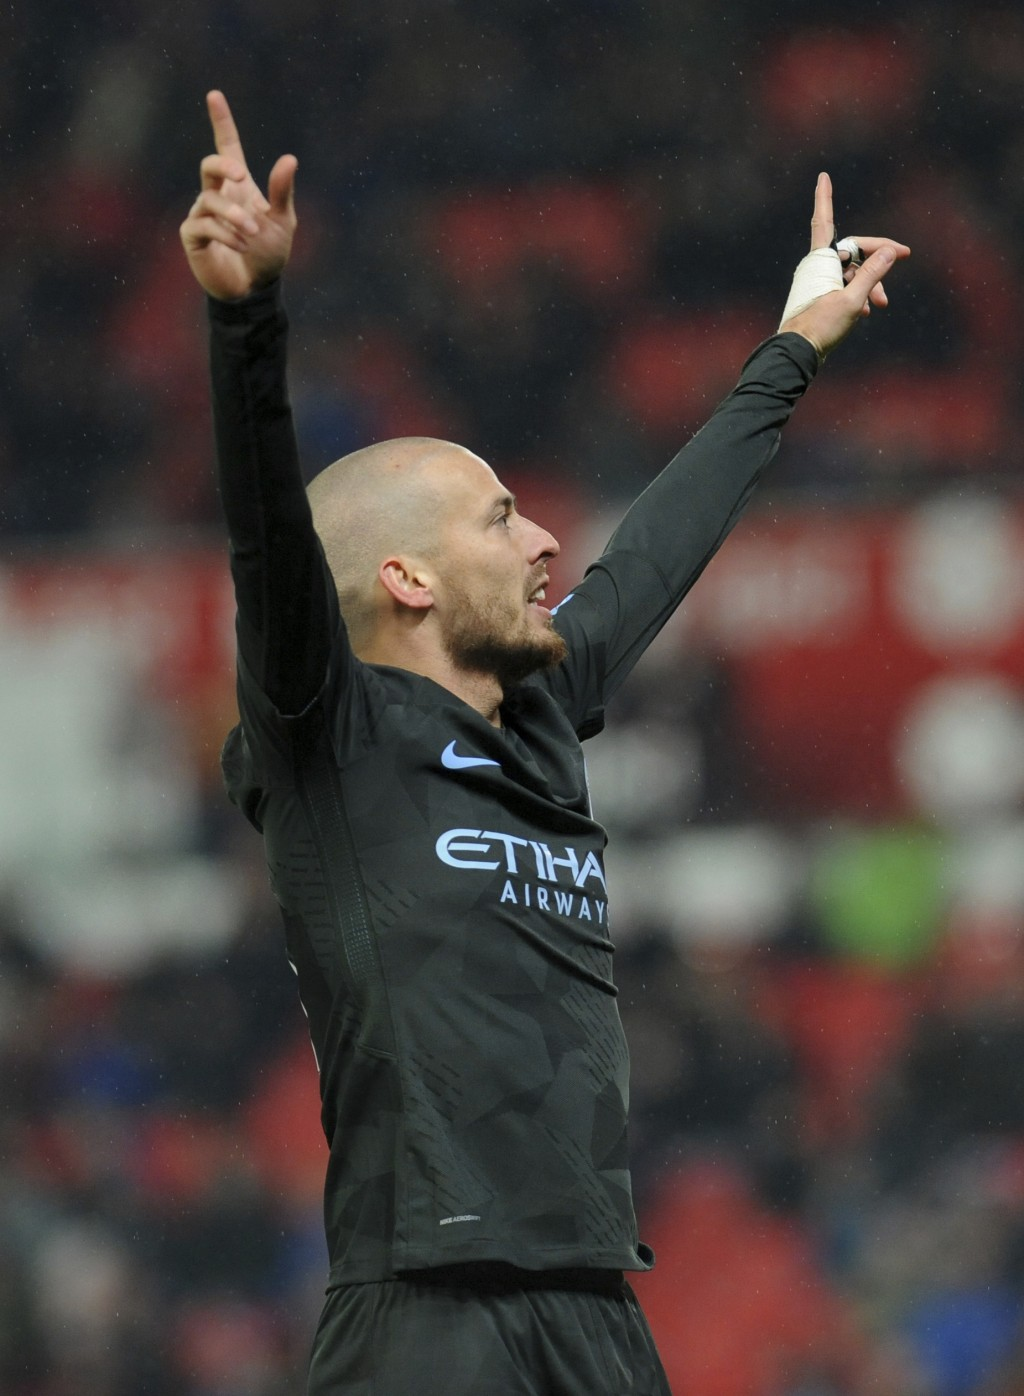 Manchester City's David Silva celebrates after scoring his second goal during the English Premier League soccer match between Stoke City and Mancheste